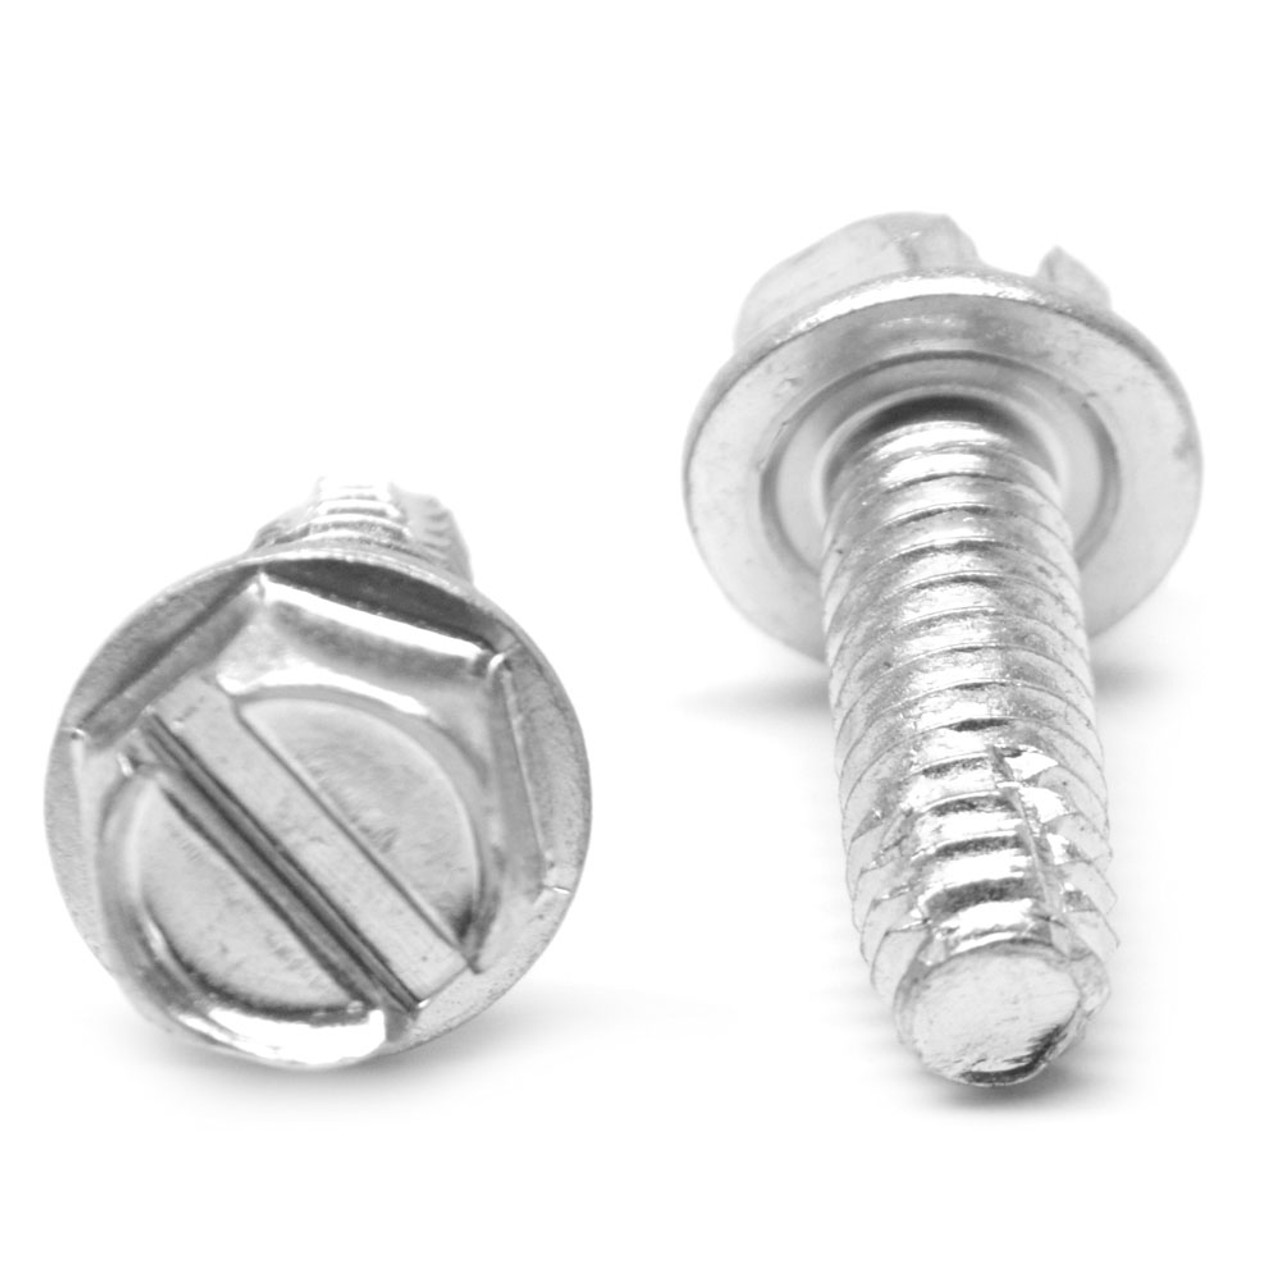 #10-32 x 1 3/4 Fine Thread Thread Cutting Screw Slotted Hex Washer Head Type F Low Carbon Steel Zinc Plated